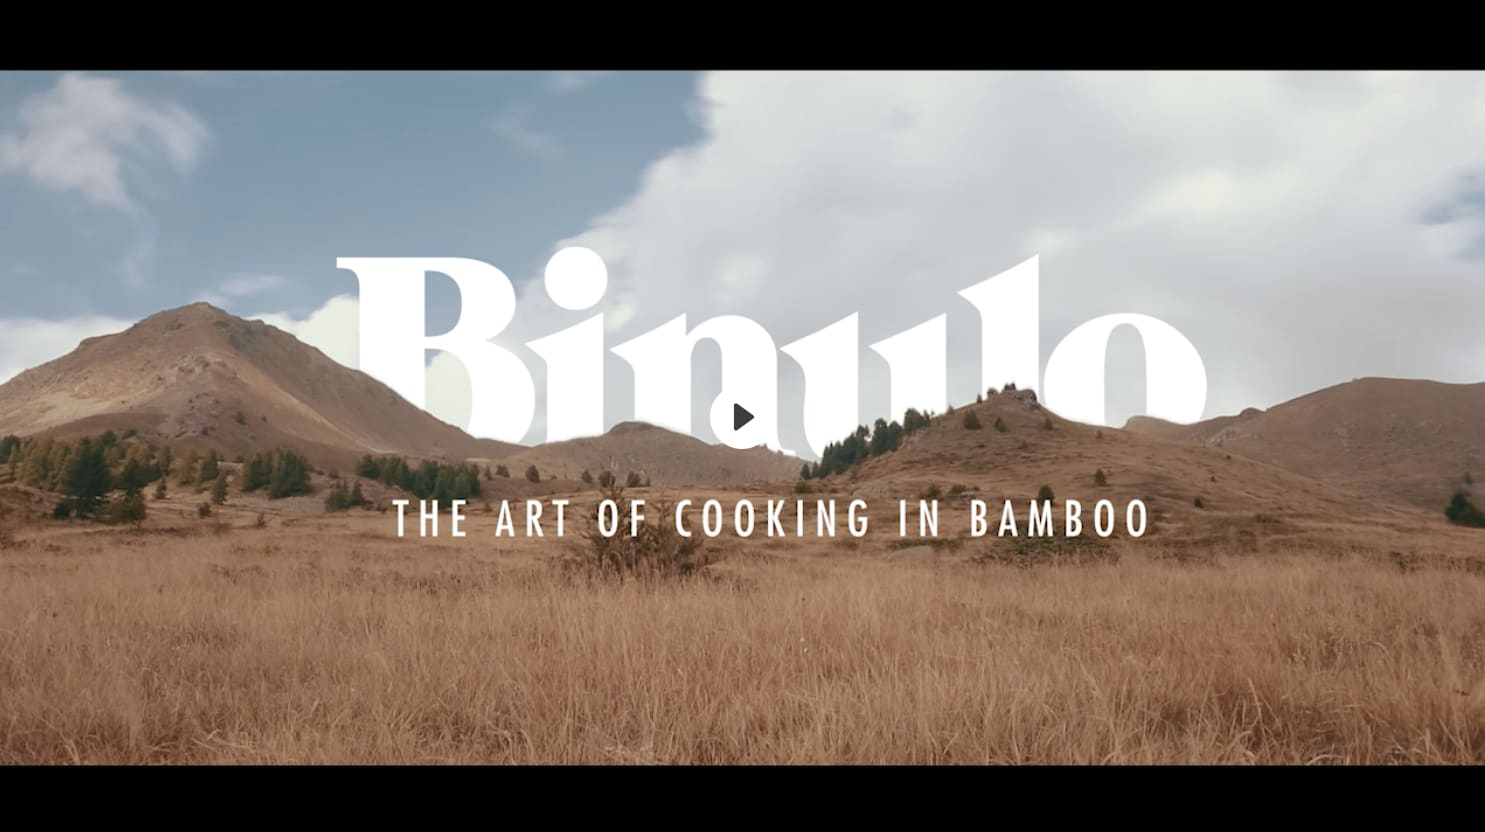 Binulo: The Art of Cooking in Bamboo